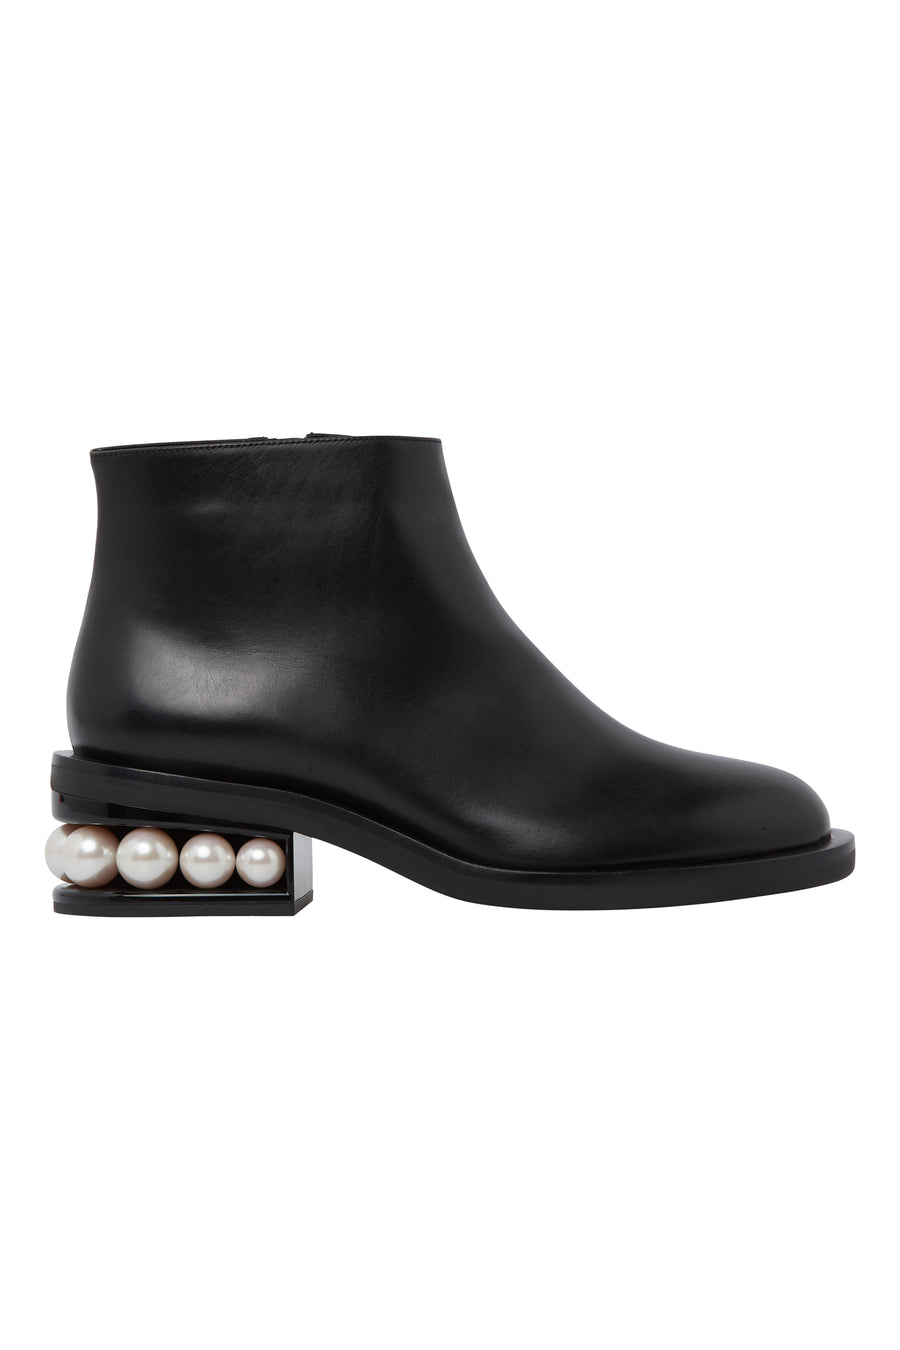 35mm Casati Pearl Ankle Boots